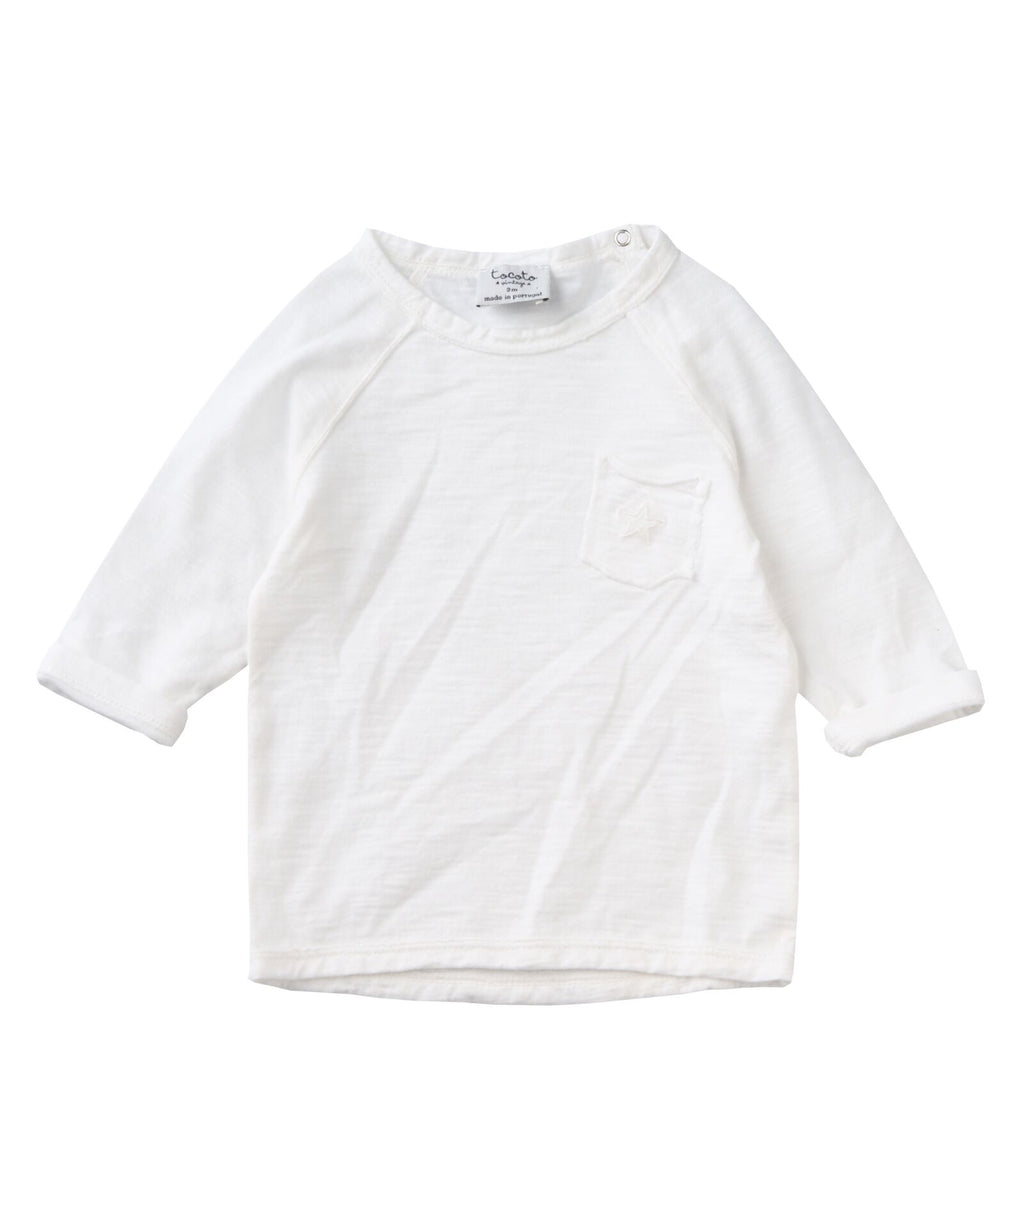 Tocoto Vintage Unisex Baby Pocket Star Embroidered Long Sleeve T-Shirt - Sisi & Seb